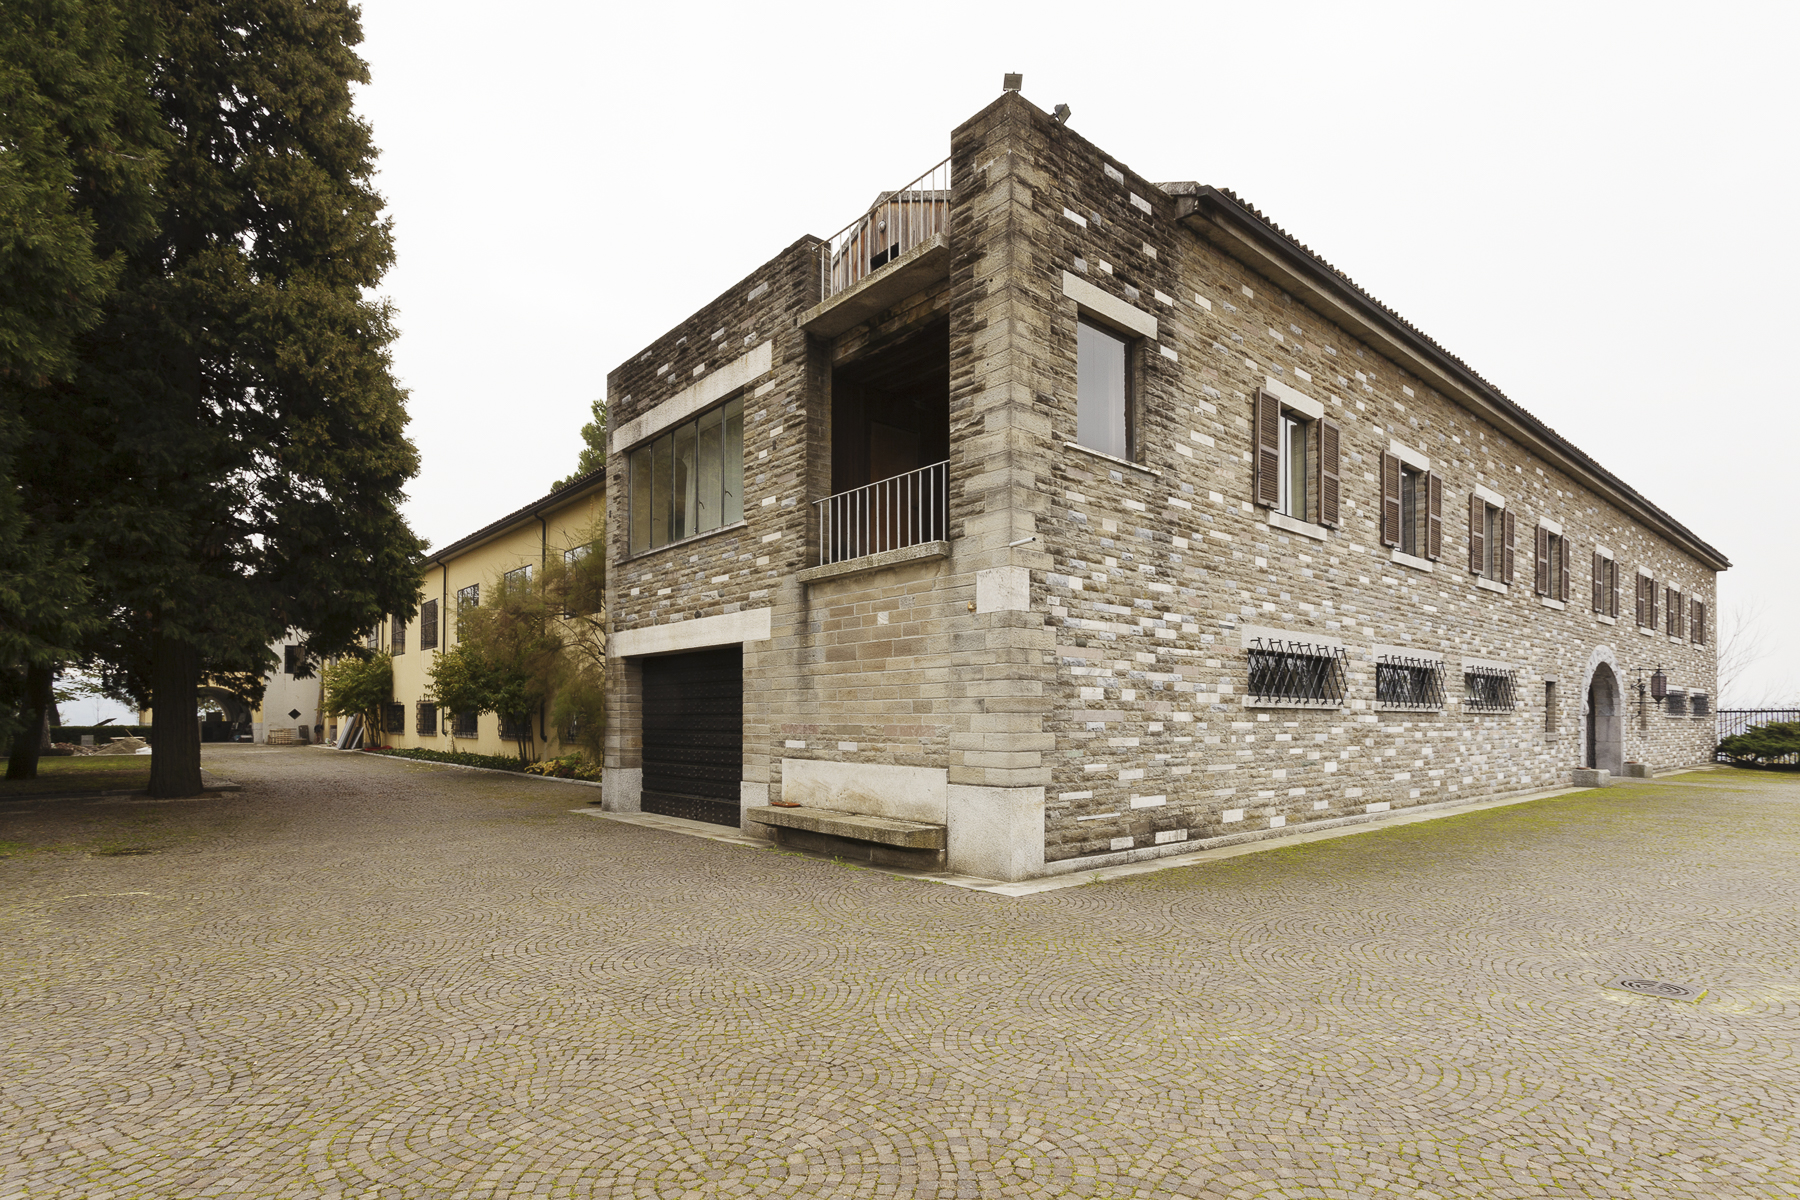 Additional photo for property listing at Villa Ottolenghi, architectural masterpiece in Monferrato Strada Monterosso Acqui Terme, Alessandria 15011 Italien